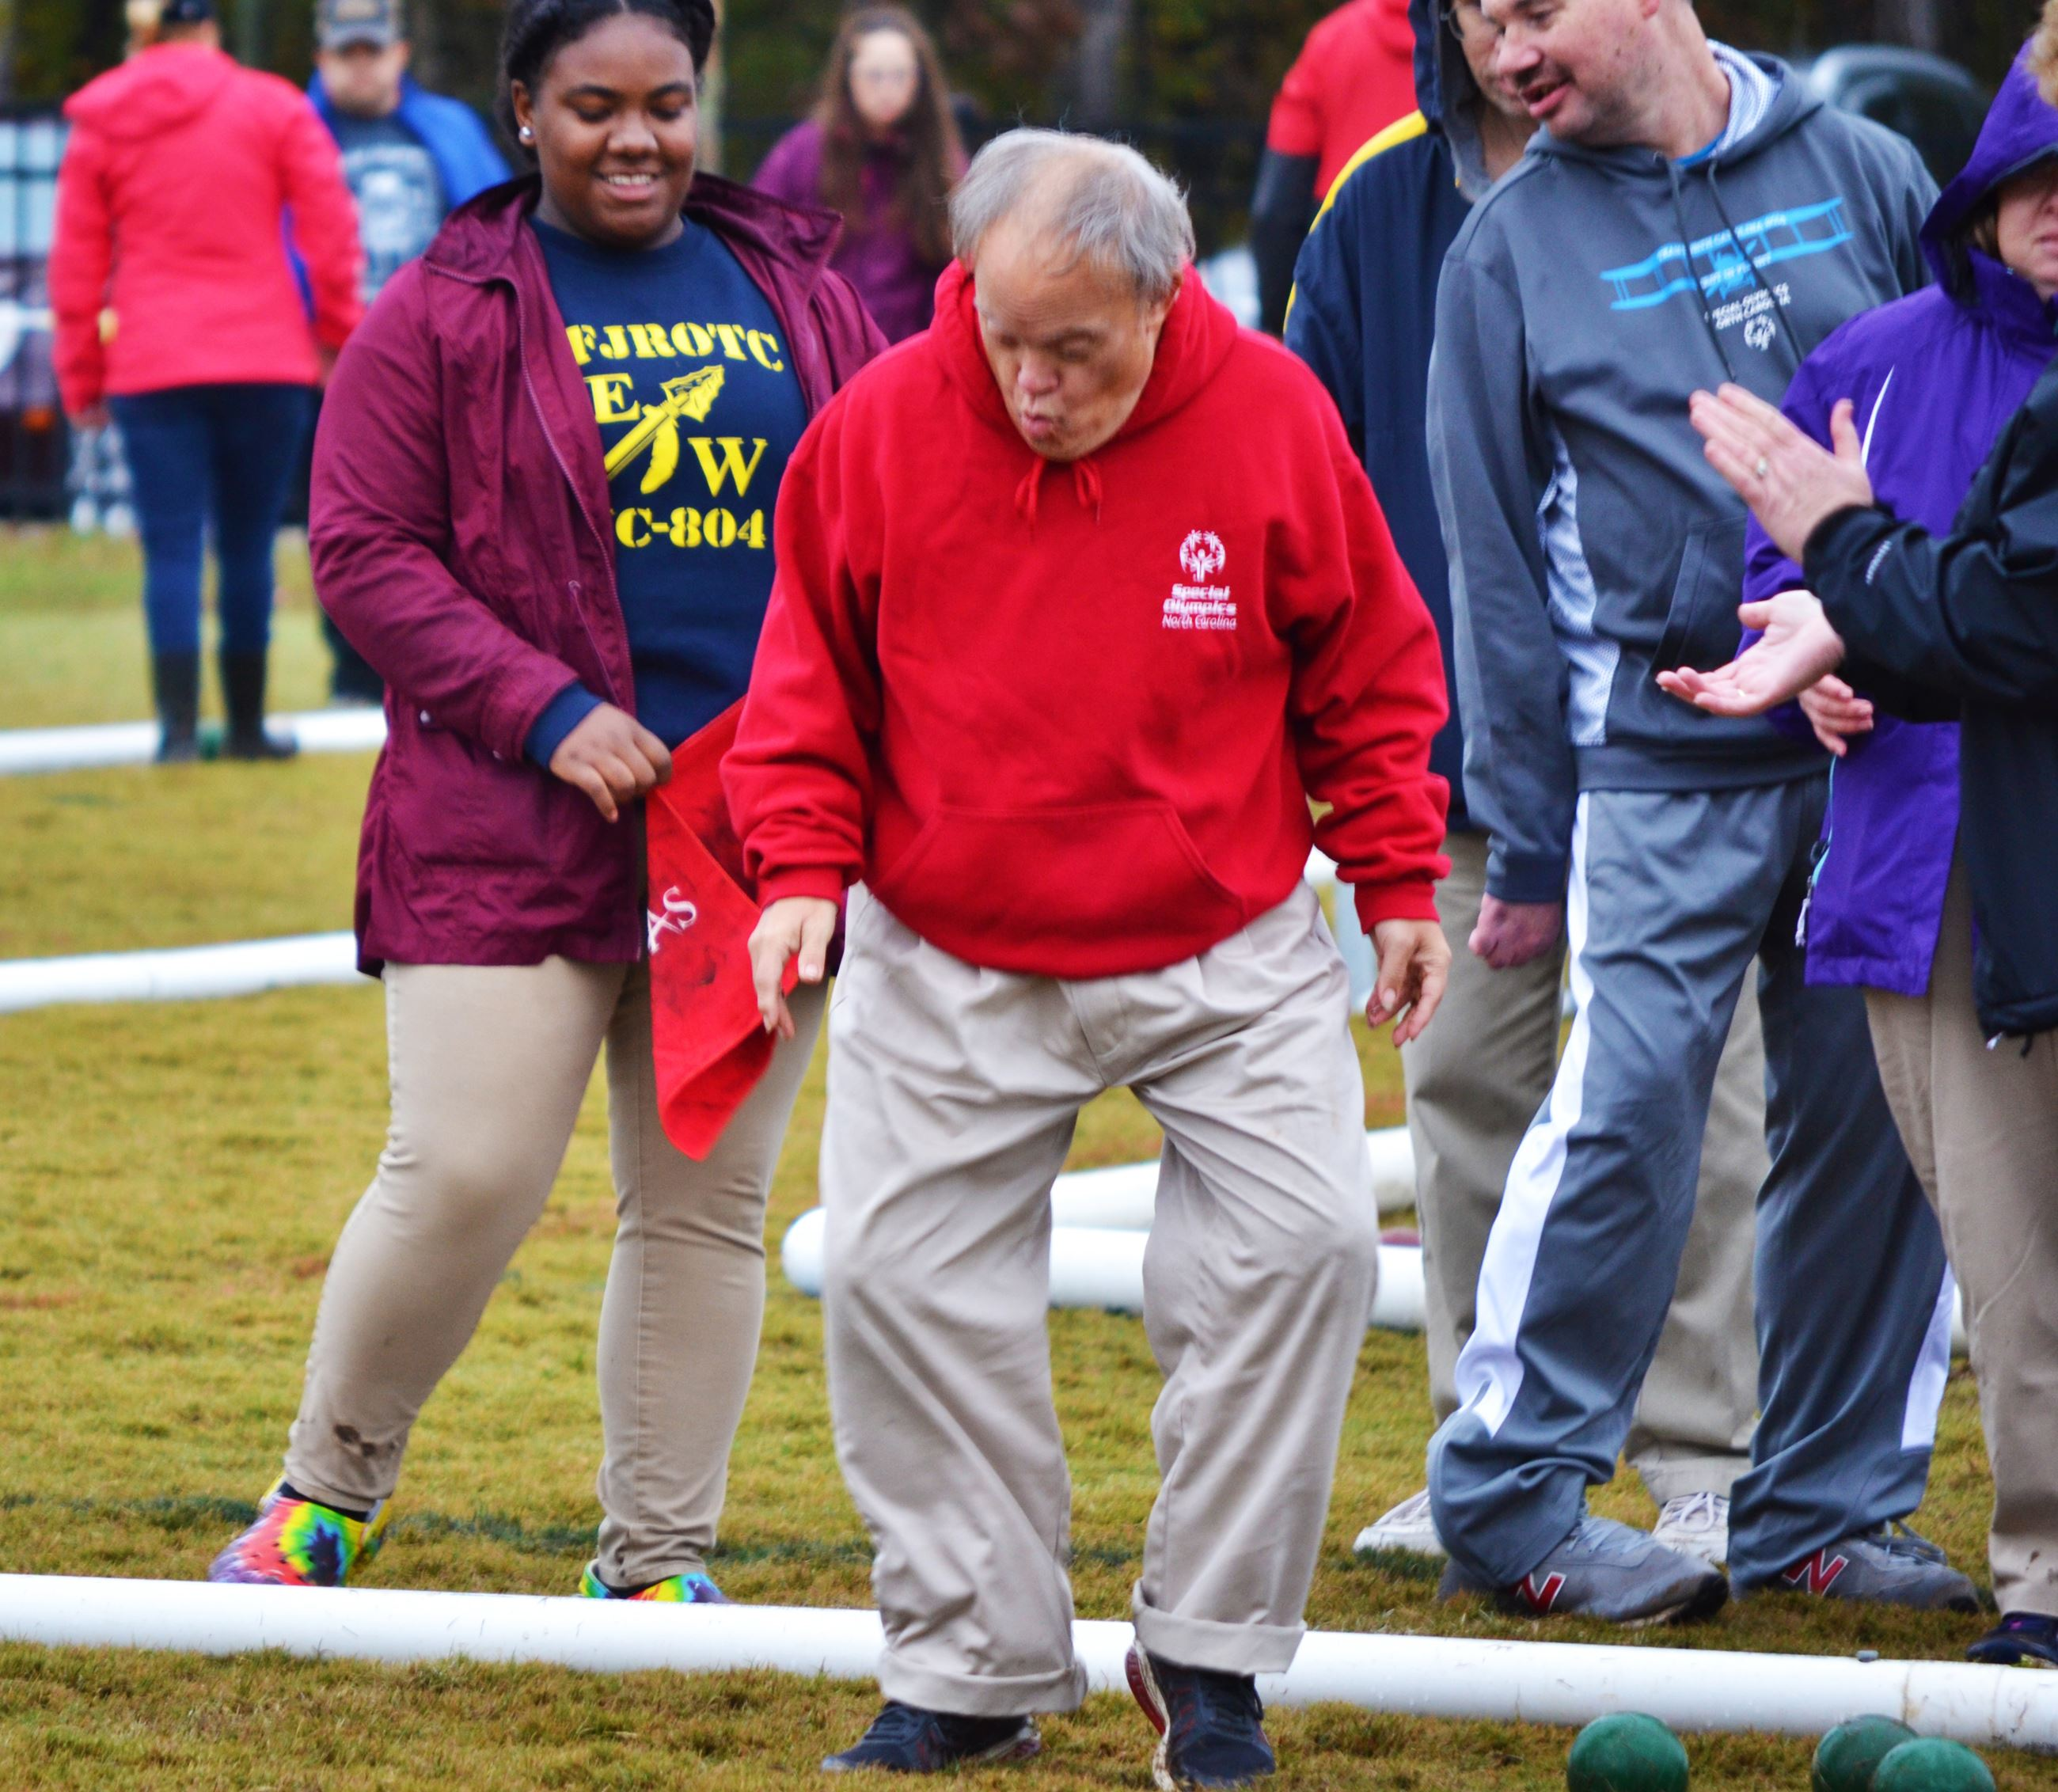 A Special Olympics athlete dances after a particularly good bowl during the bocce tournament at Ches